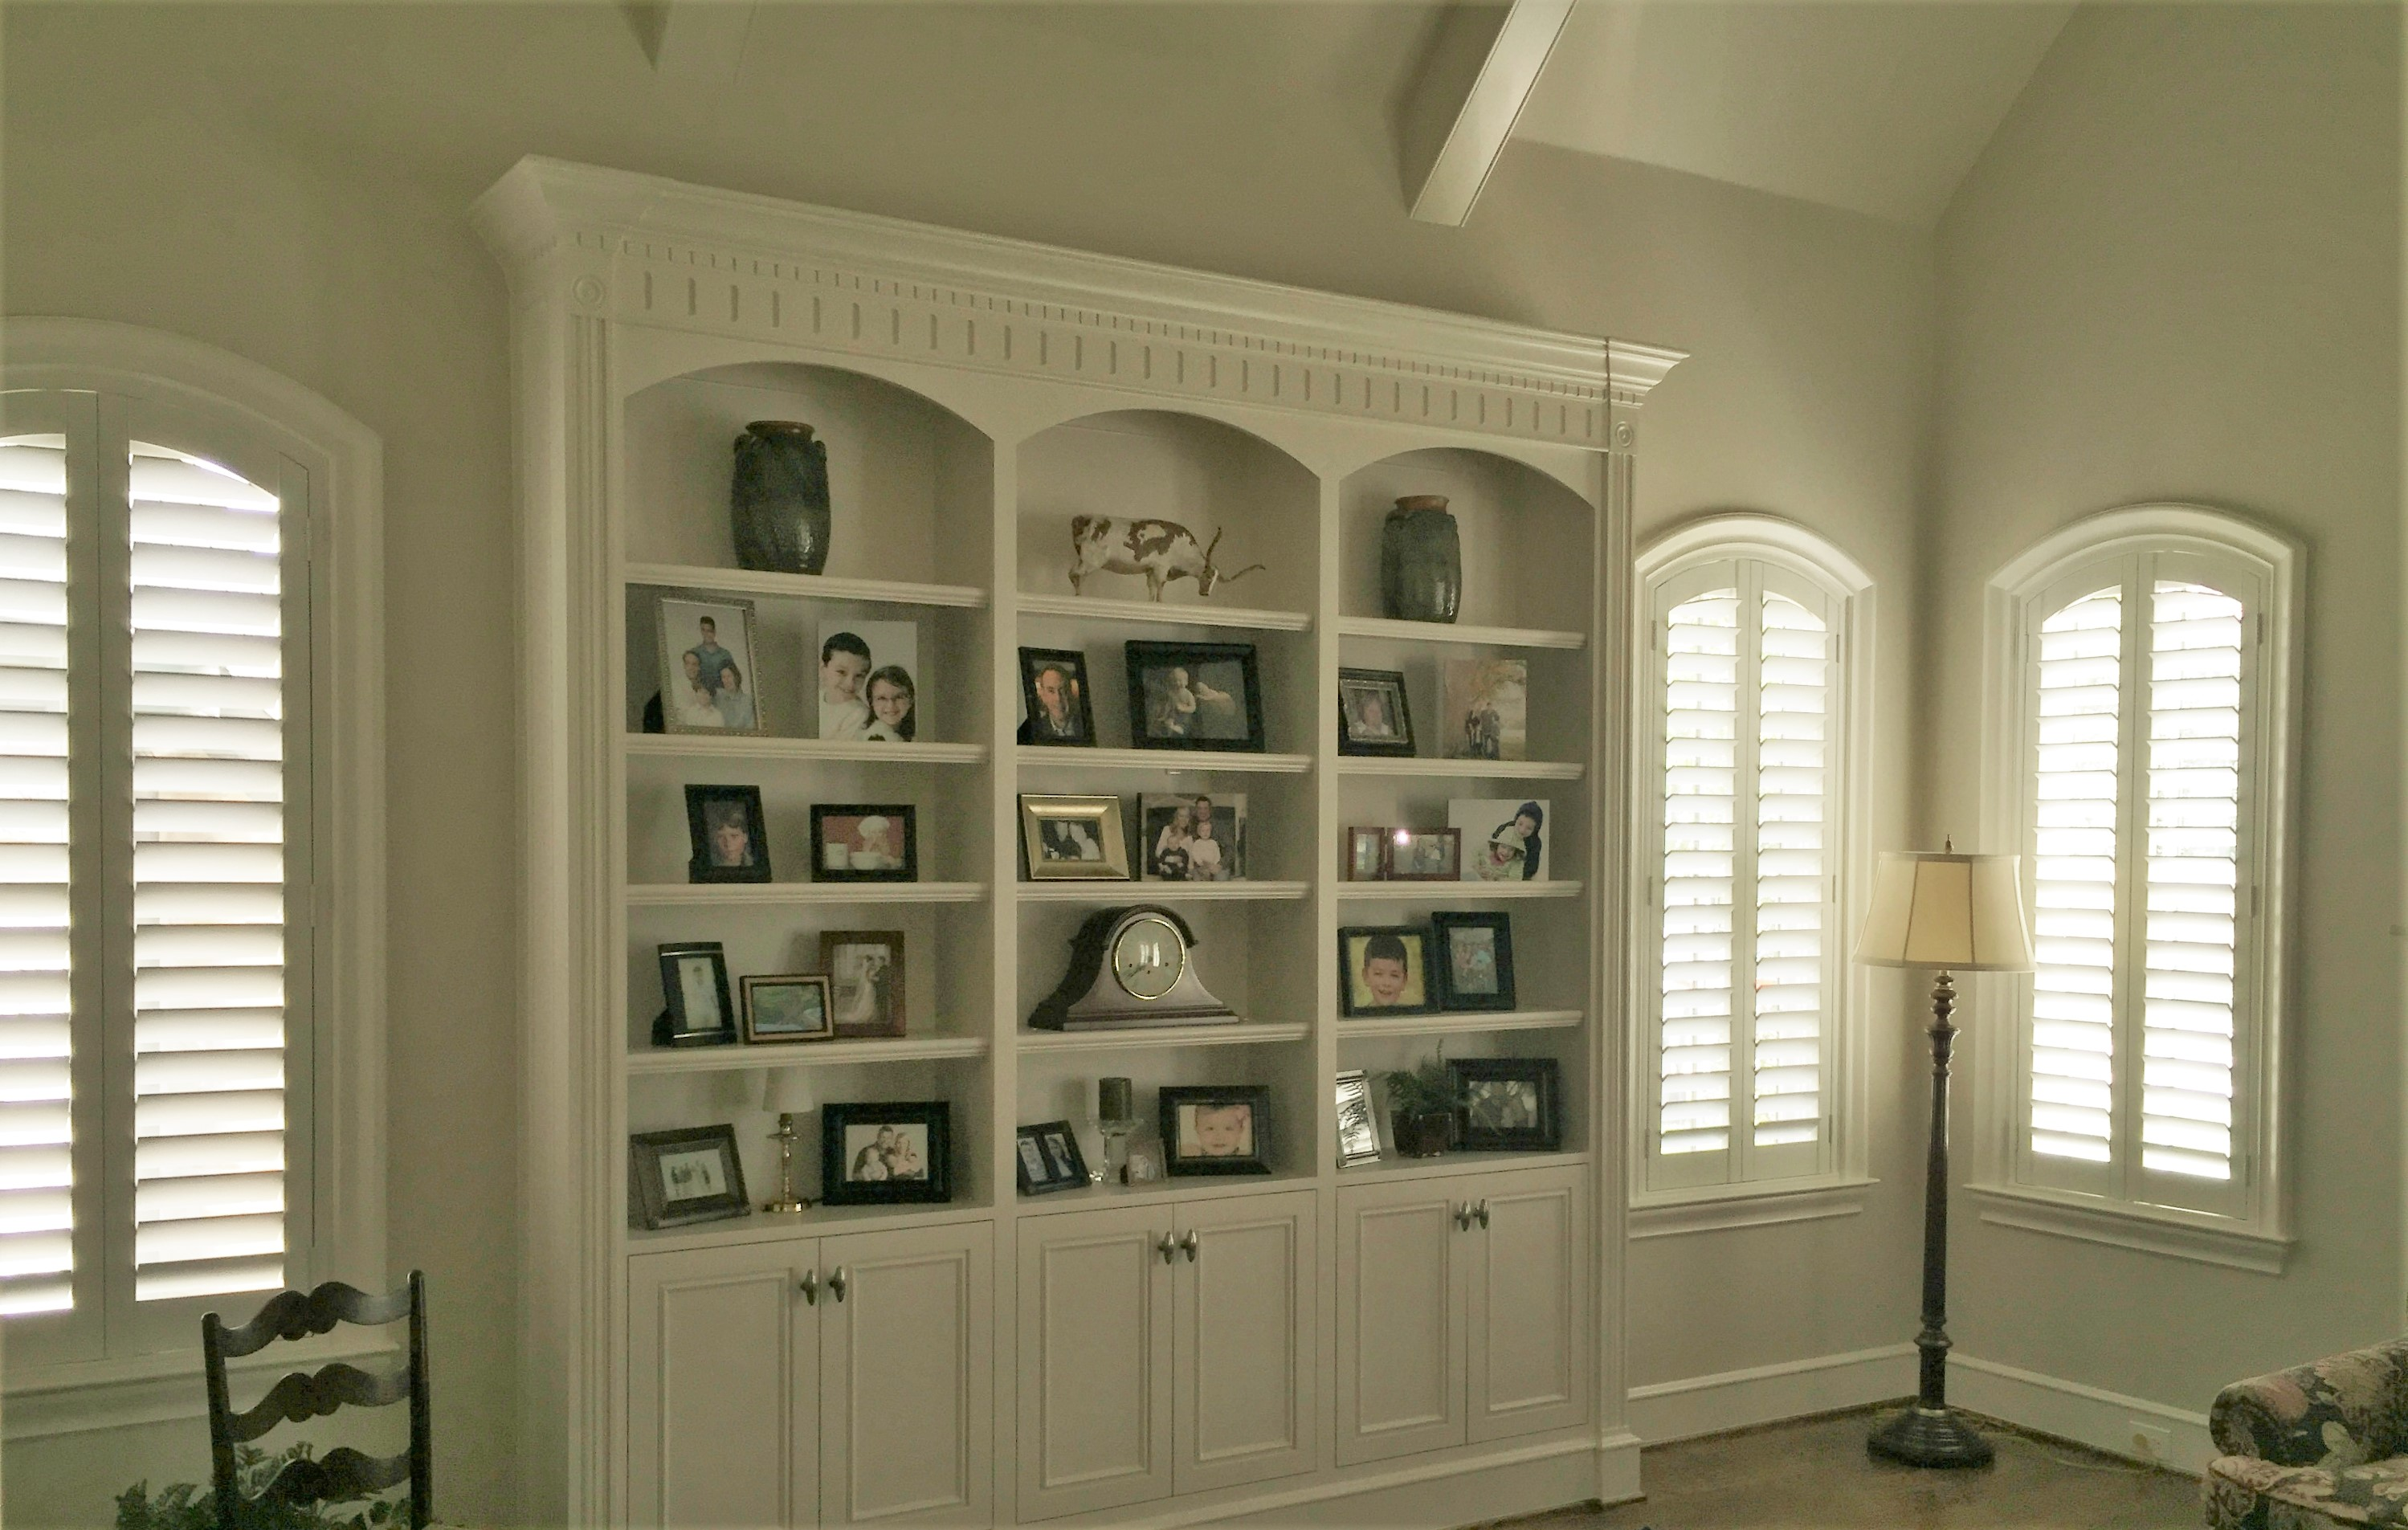 plantation shutters for arched windows eyebrow arch arched windows can make big statement in your home and shutters let the speak for themselves shutters in fort lauderdale sunburst